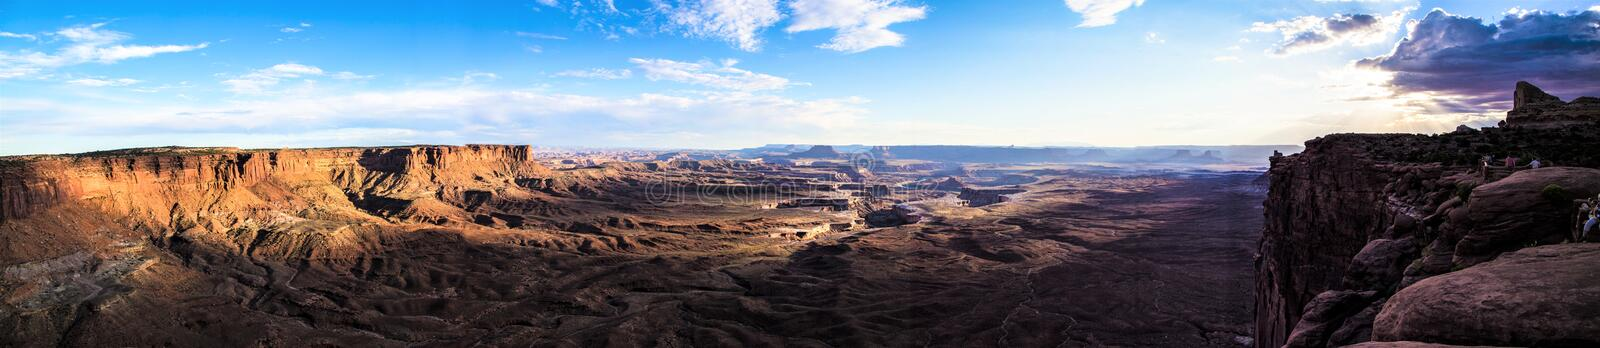 Dead Horse Point stock image